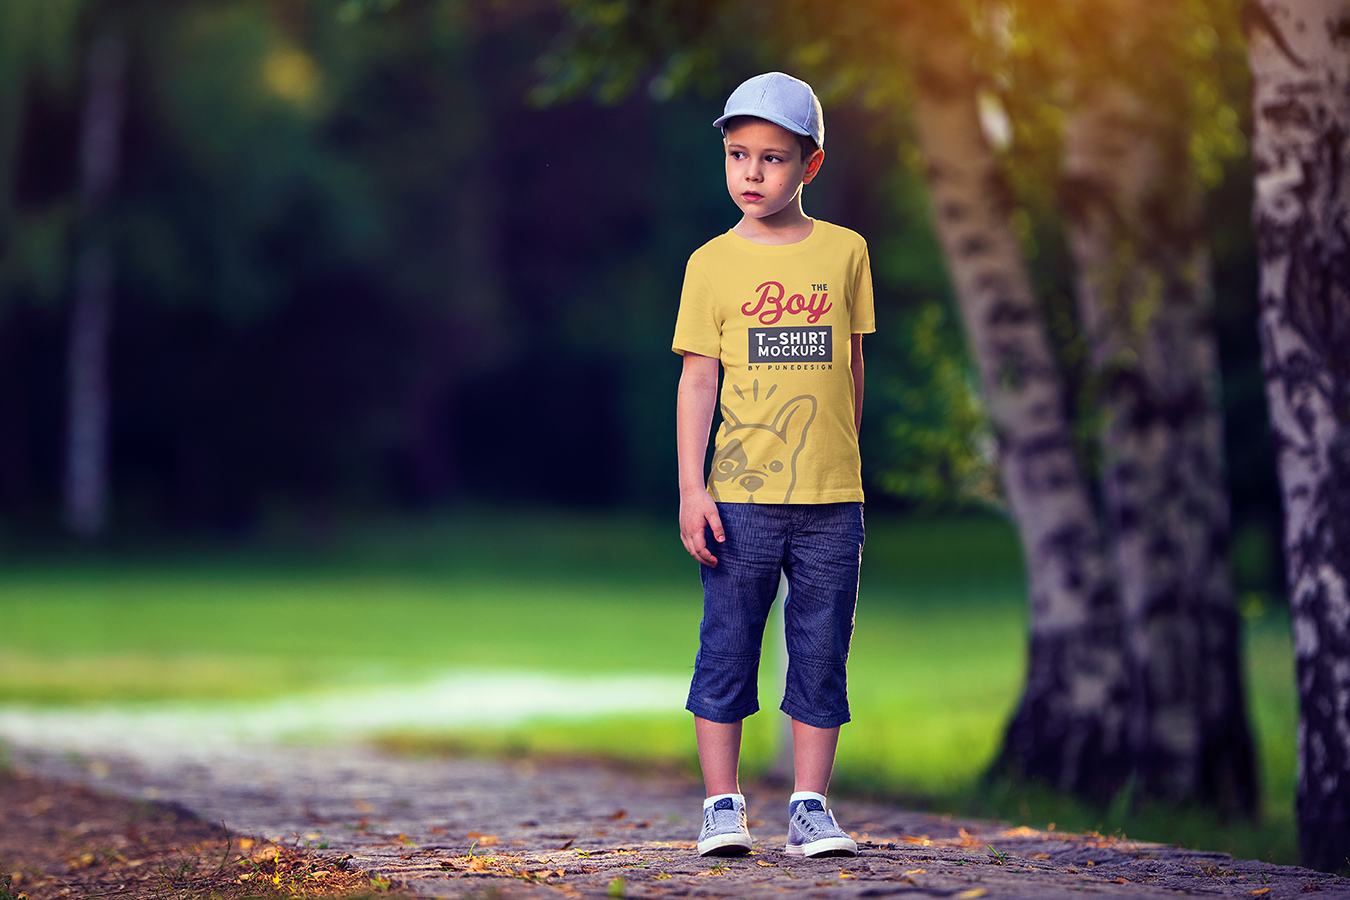 04-Boy-T-Shirt-Mockup-By-PuneDesign